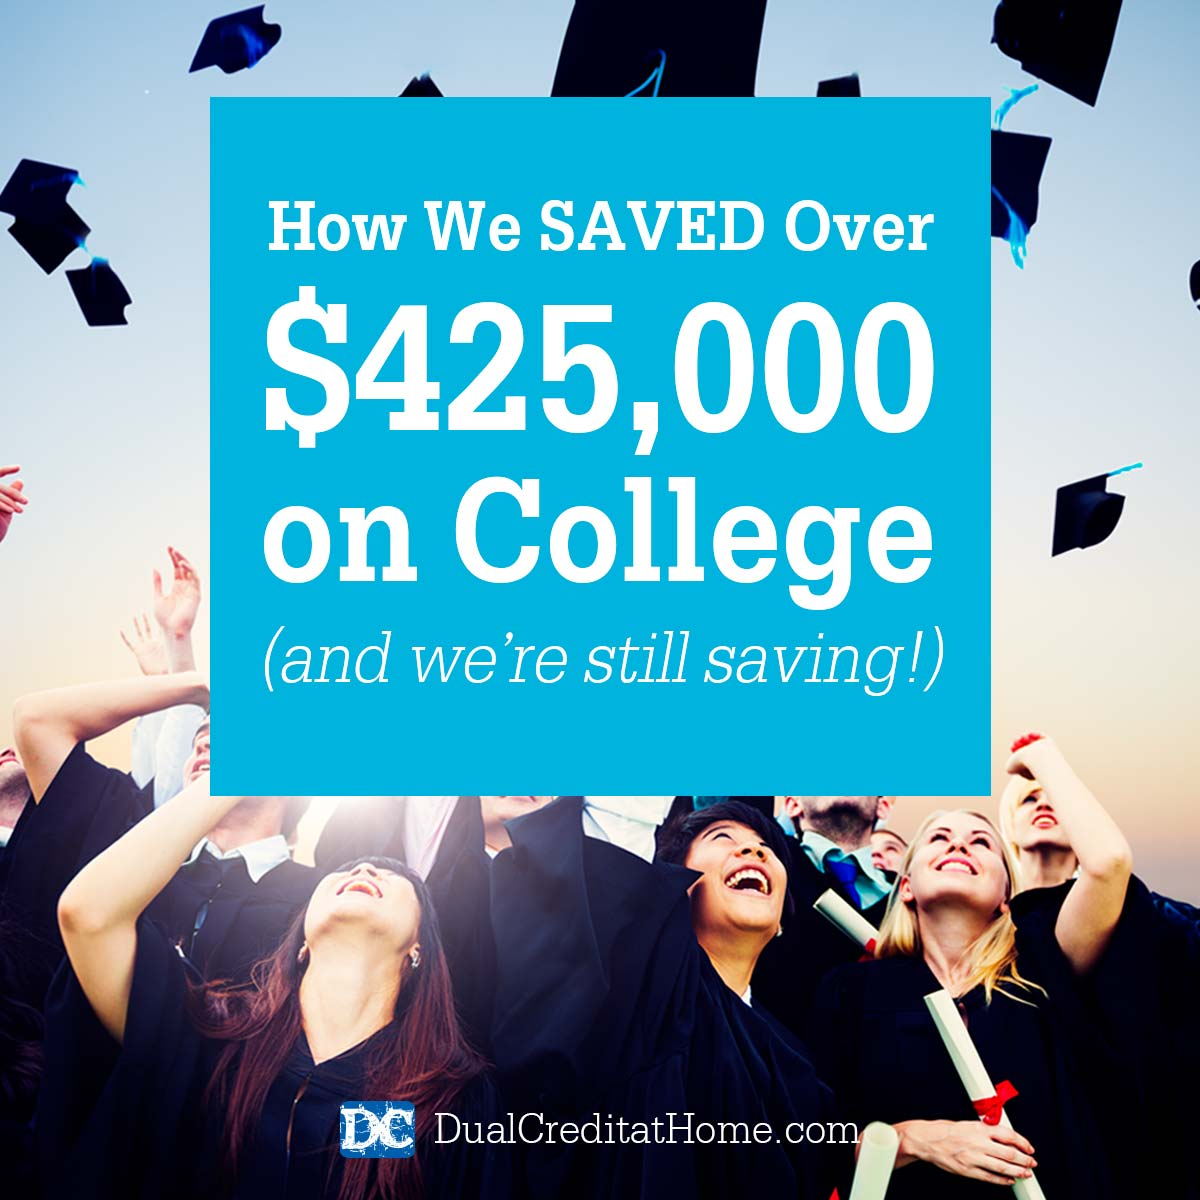 How we Saved over $425,000 on College